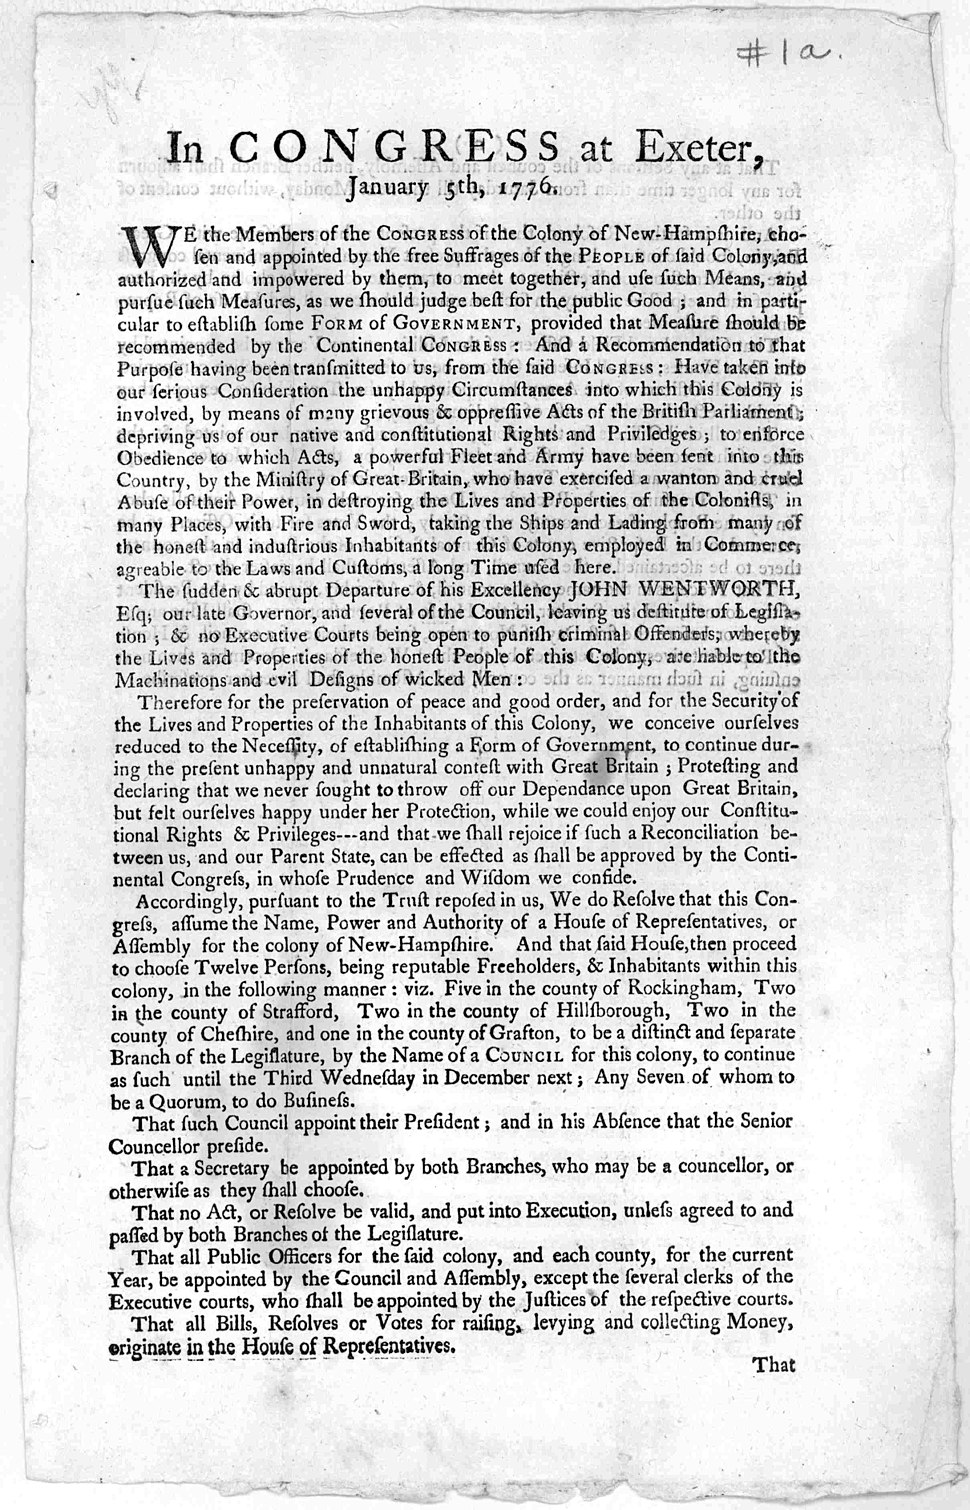 Broadside In Congress at Exeter 1776